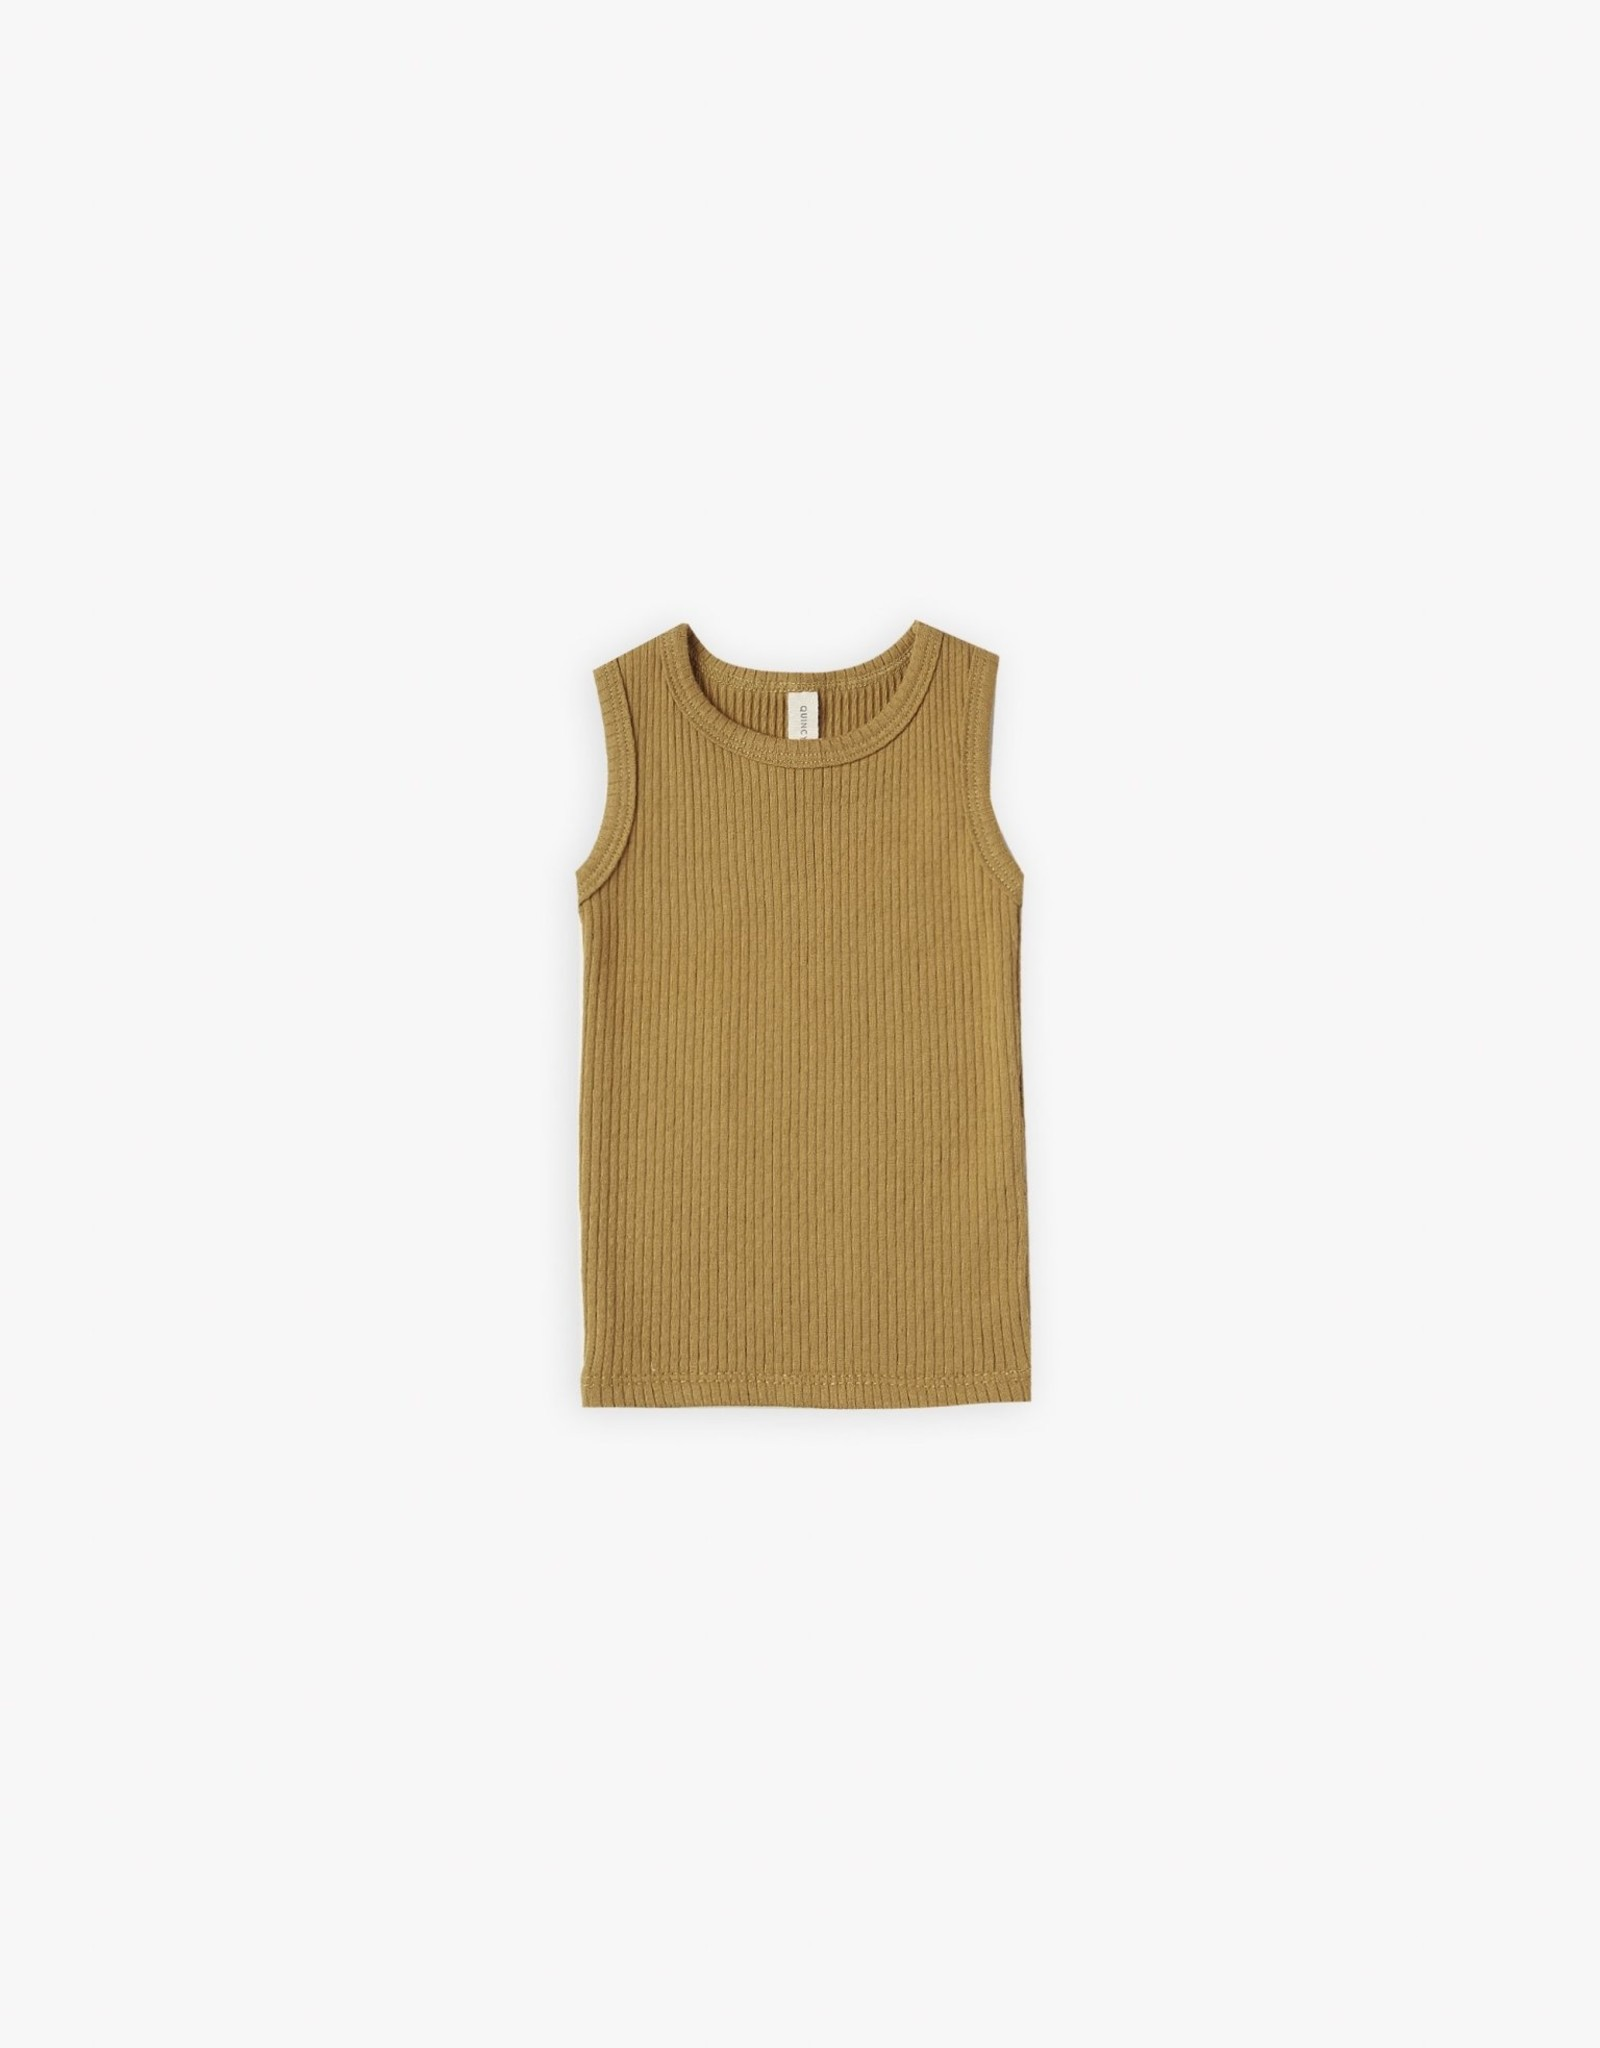 Quincy Mae Quincy Mae Ribbed Tank